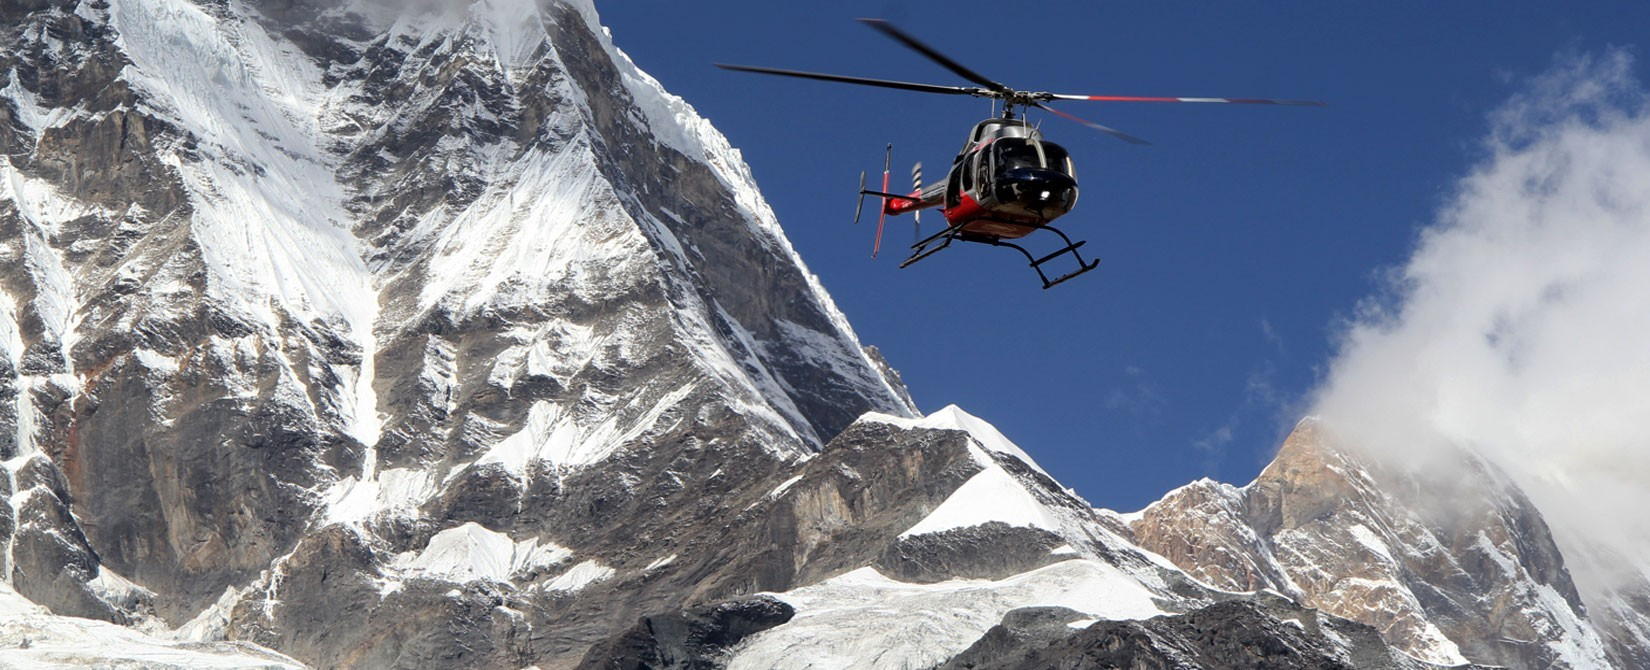 Annapurna Base Camp Helicopter